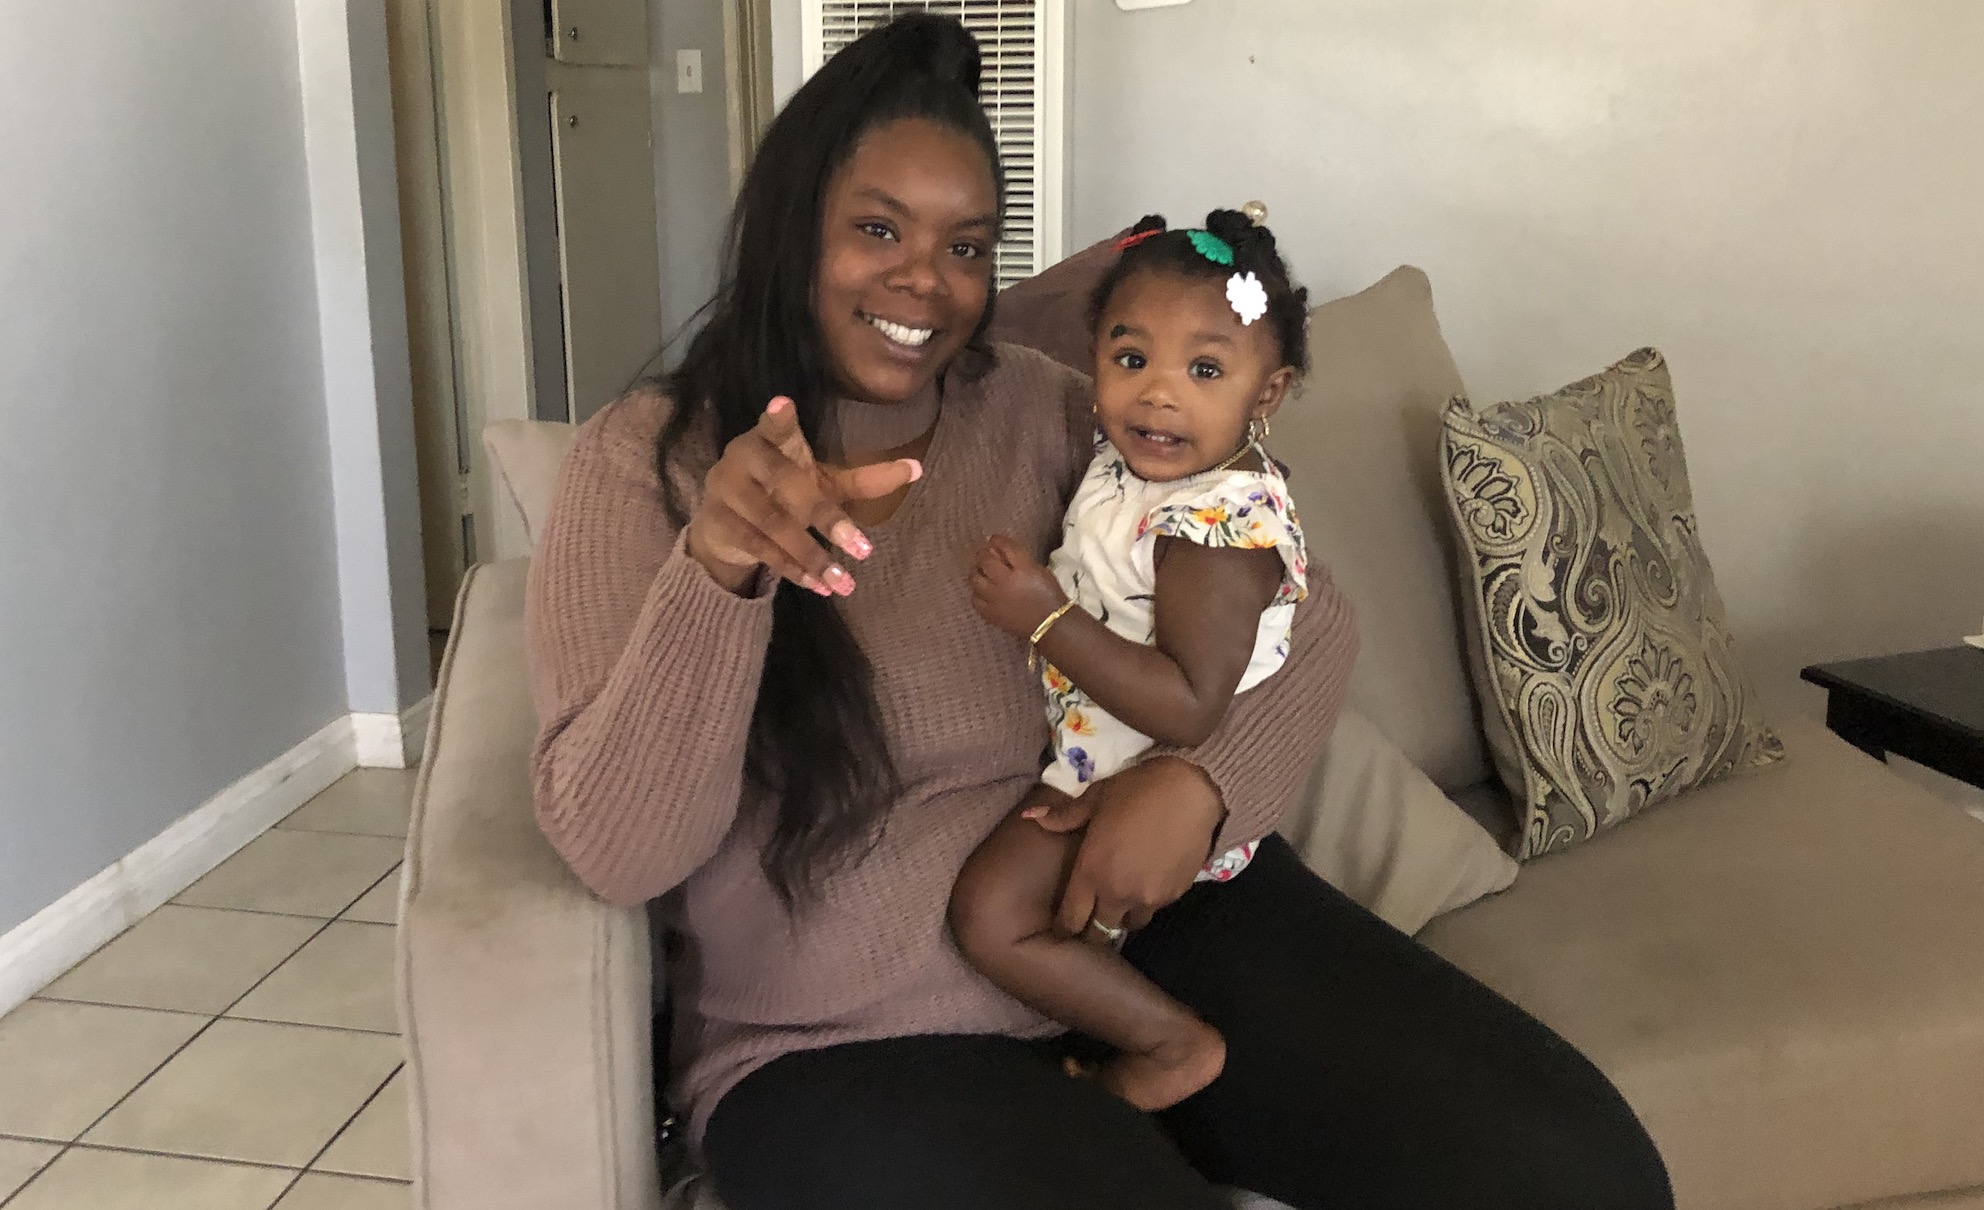 Ebony Palmer and her young daughter in her apartment. Photo by Matt Tinoco/KPCC